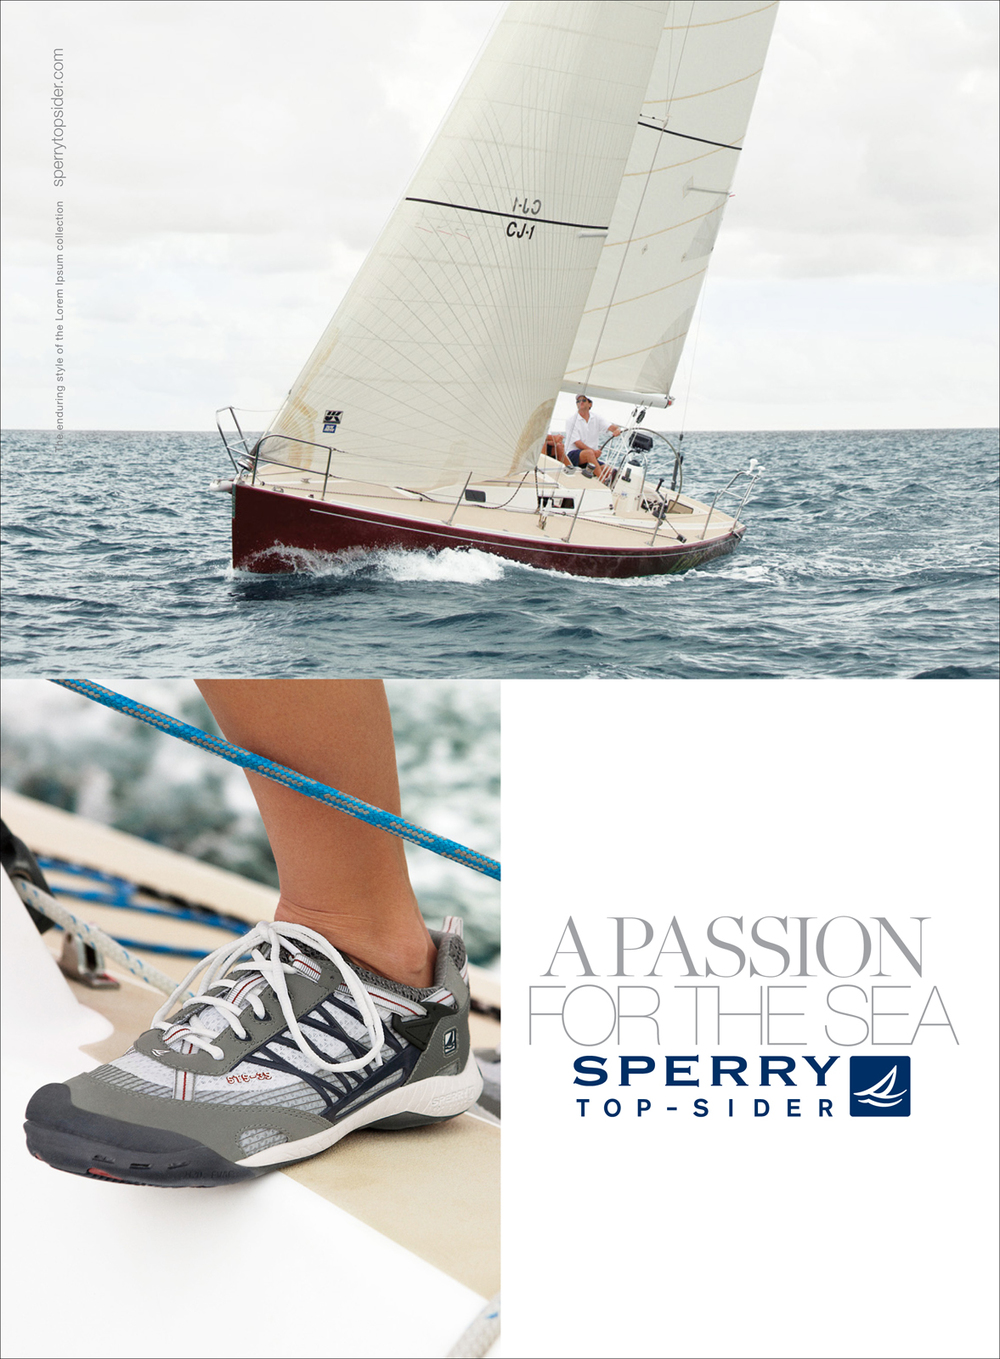 SC_ADVERTISING_SPERRY_KEYS_SS_2010_07.jpg